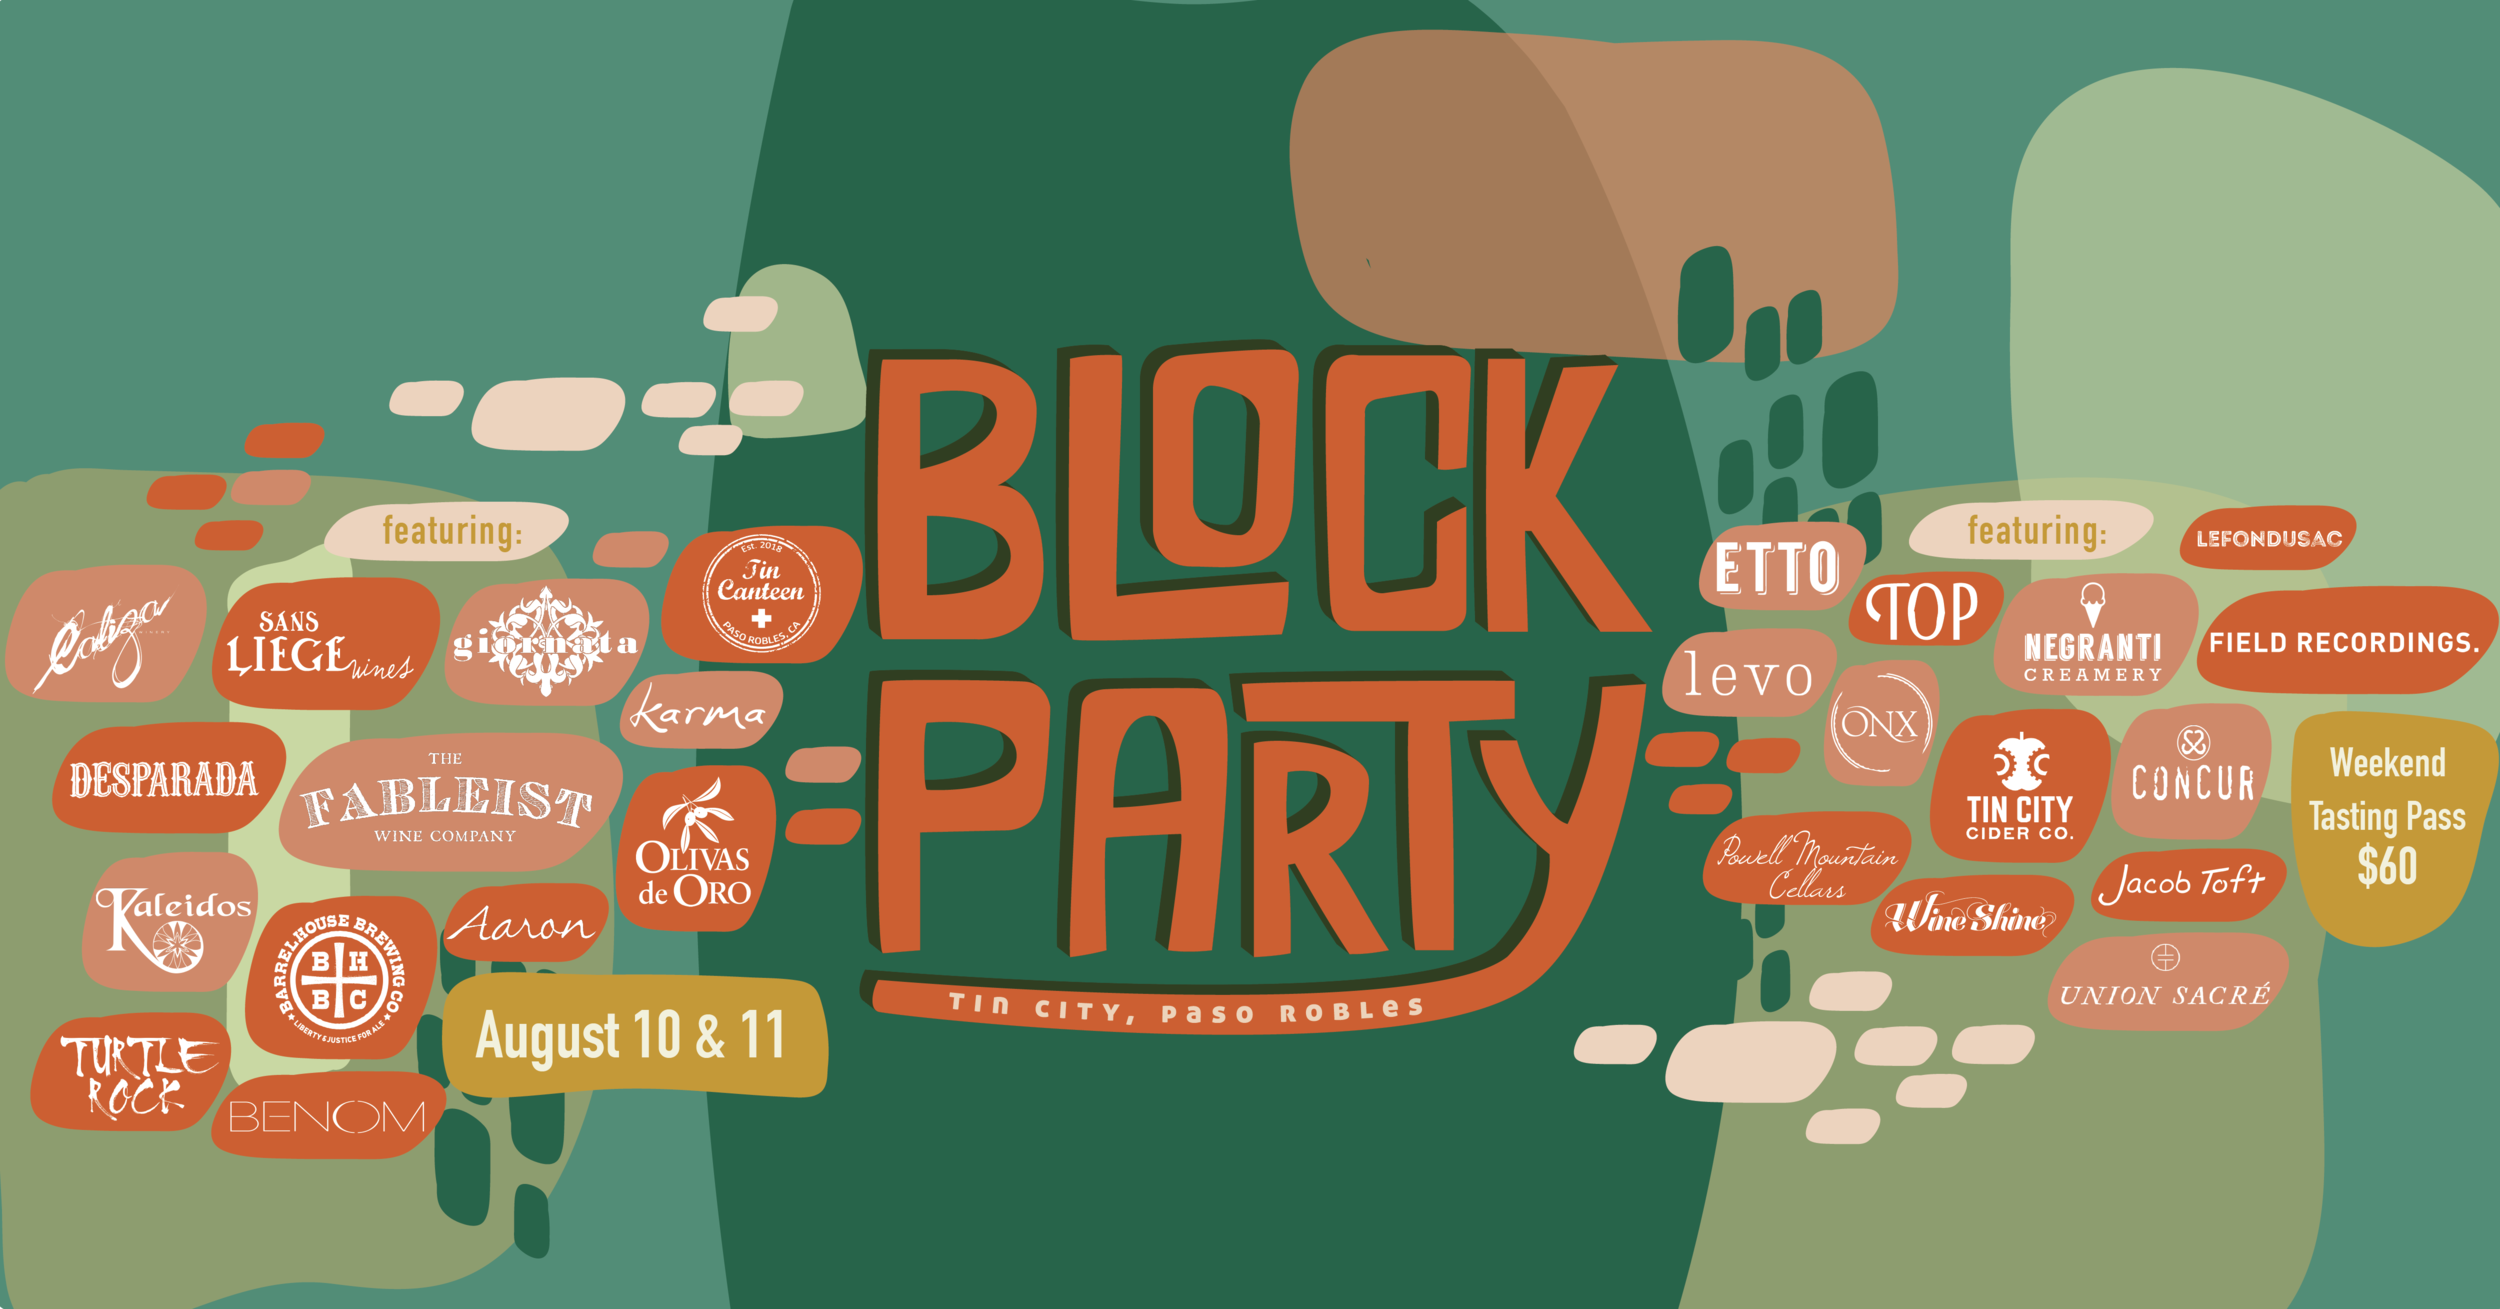 BlockParty_Facebook-01.png